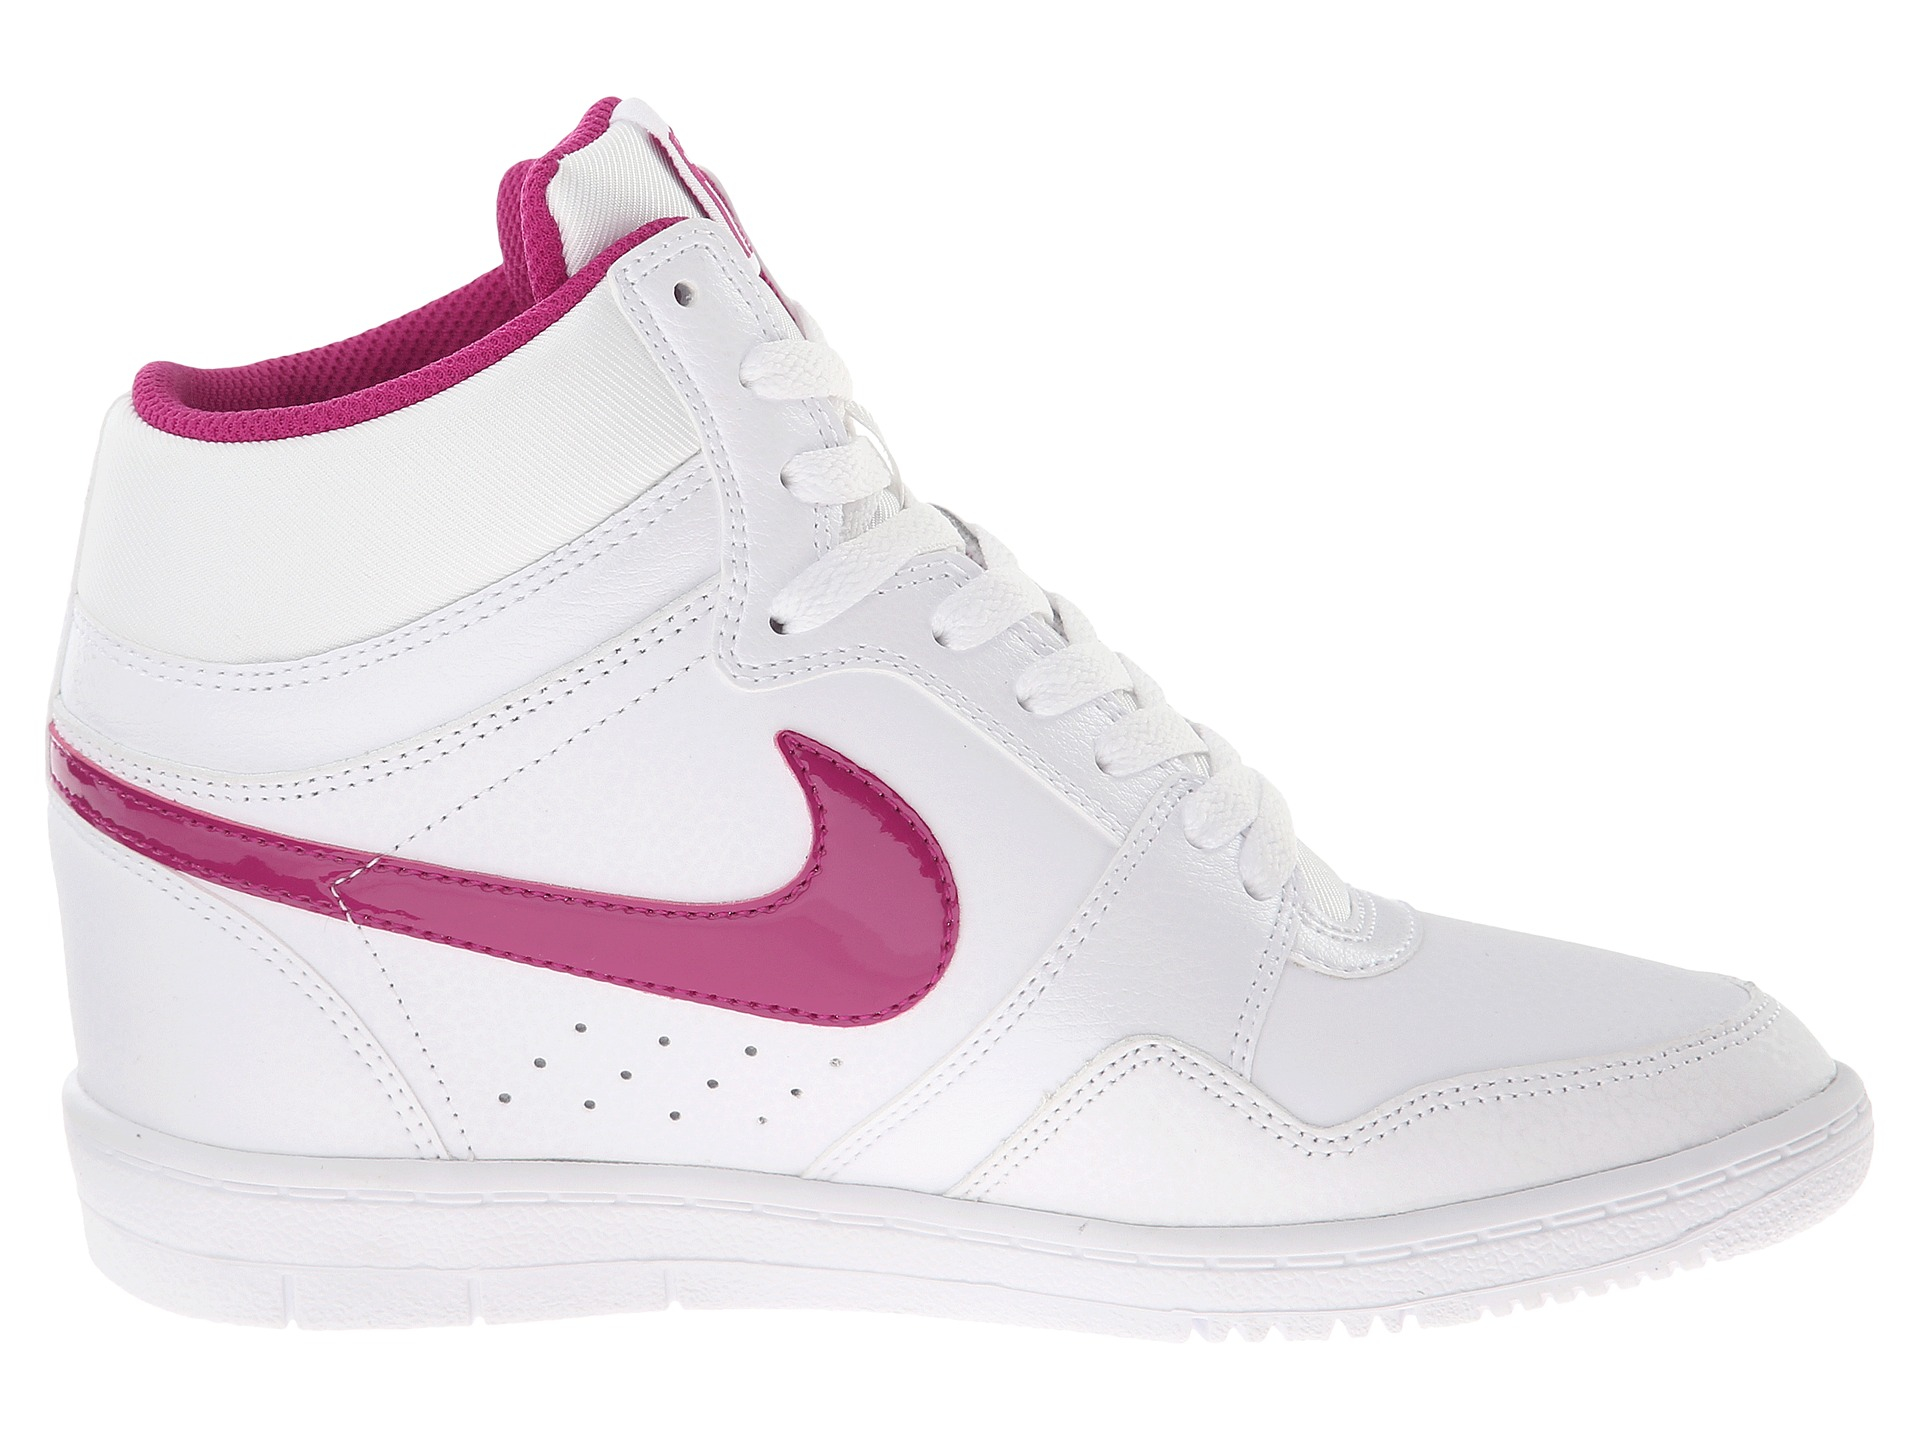 Nike Force Sky High Sneaker Wedge in White | Lyst